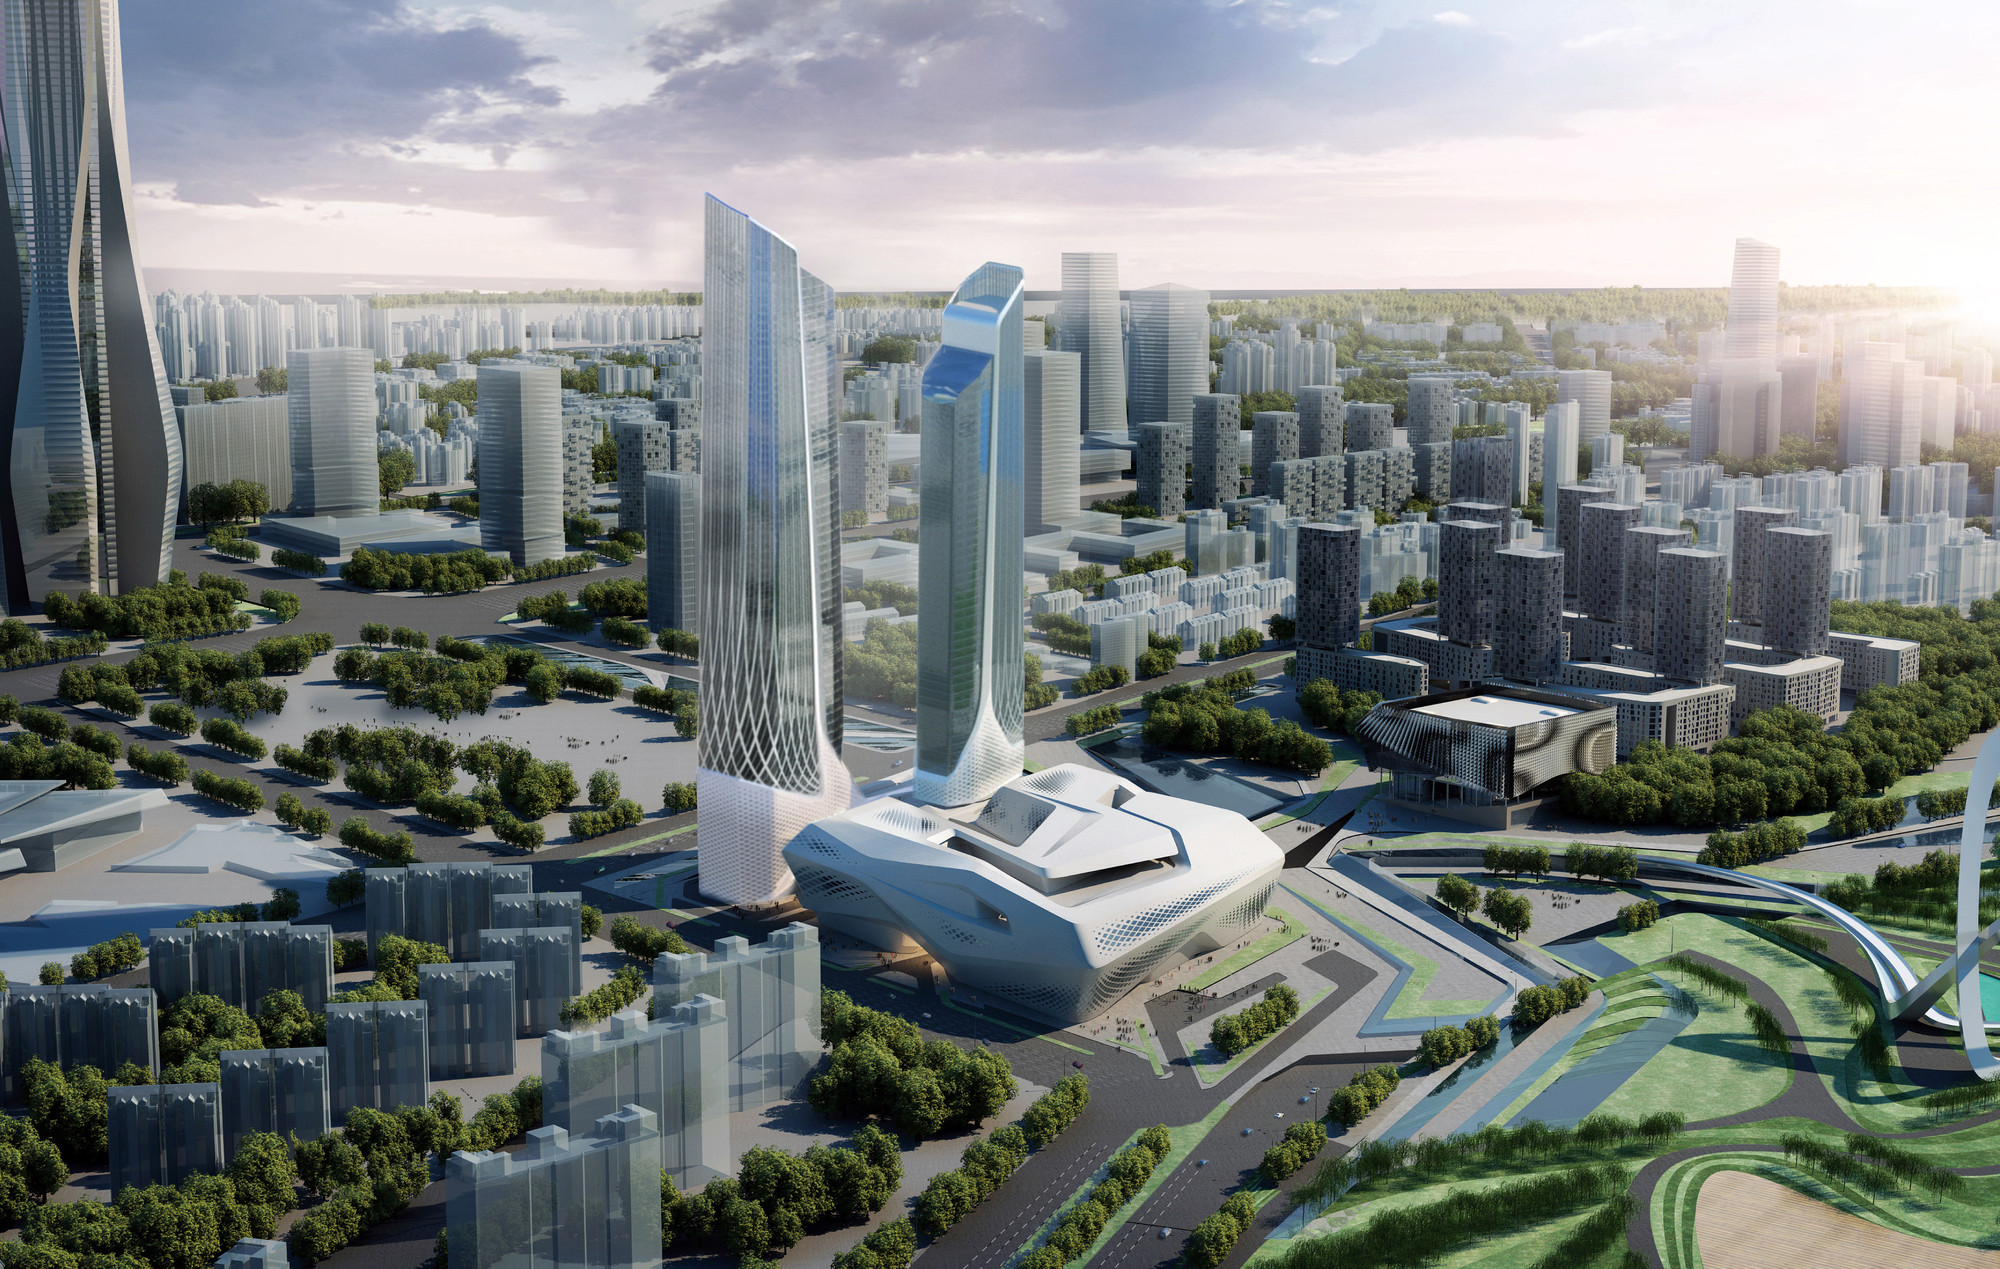 Zaha Hadid and Norman Foster Tapped to Design Luxury Hotels in China , Jumeirah Nanjing. Image Courtesy of Jumeirah Group